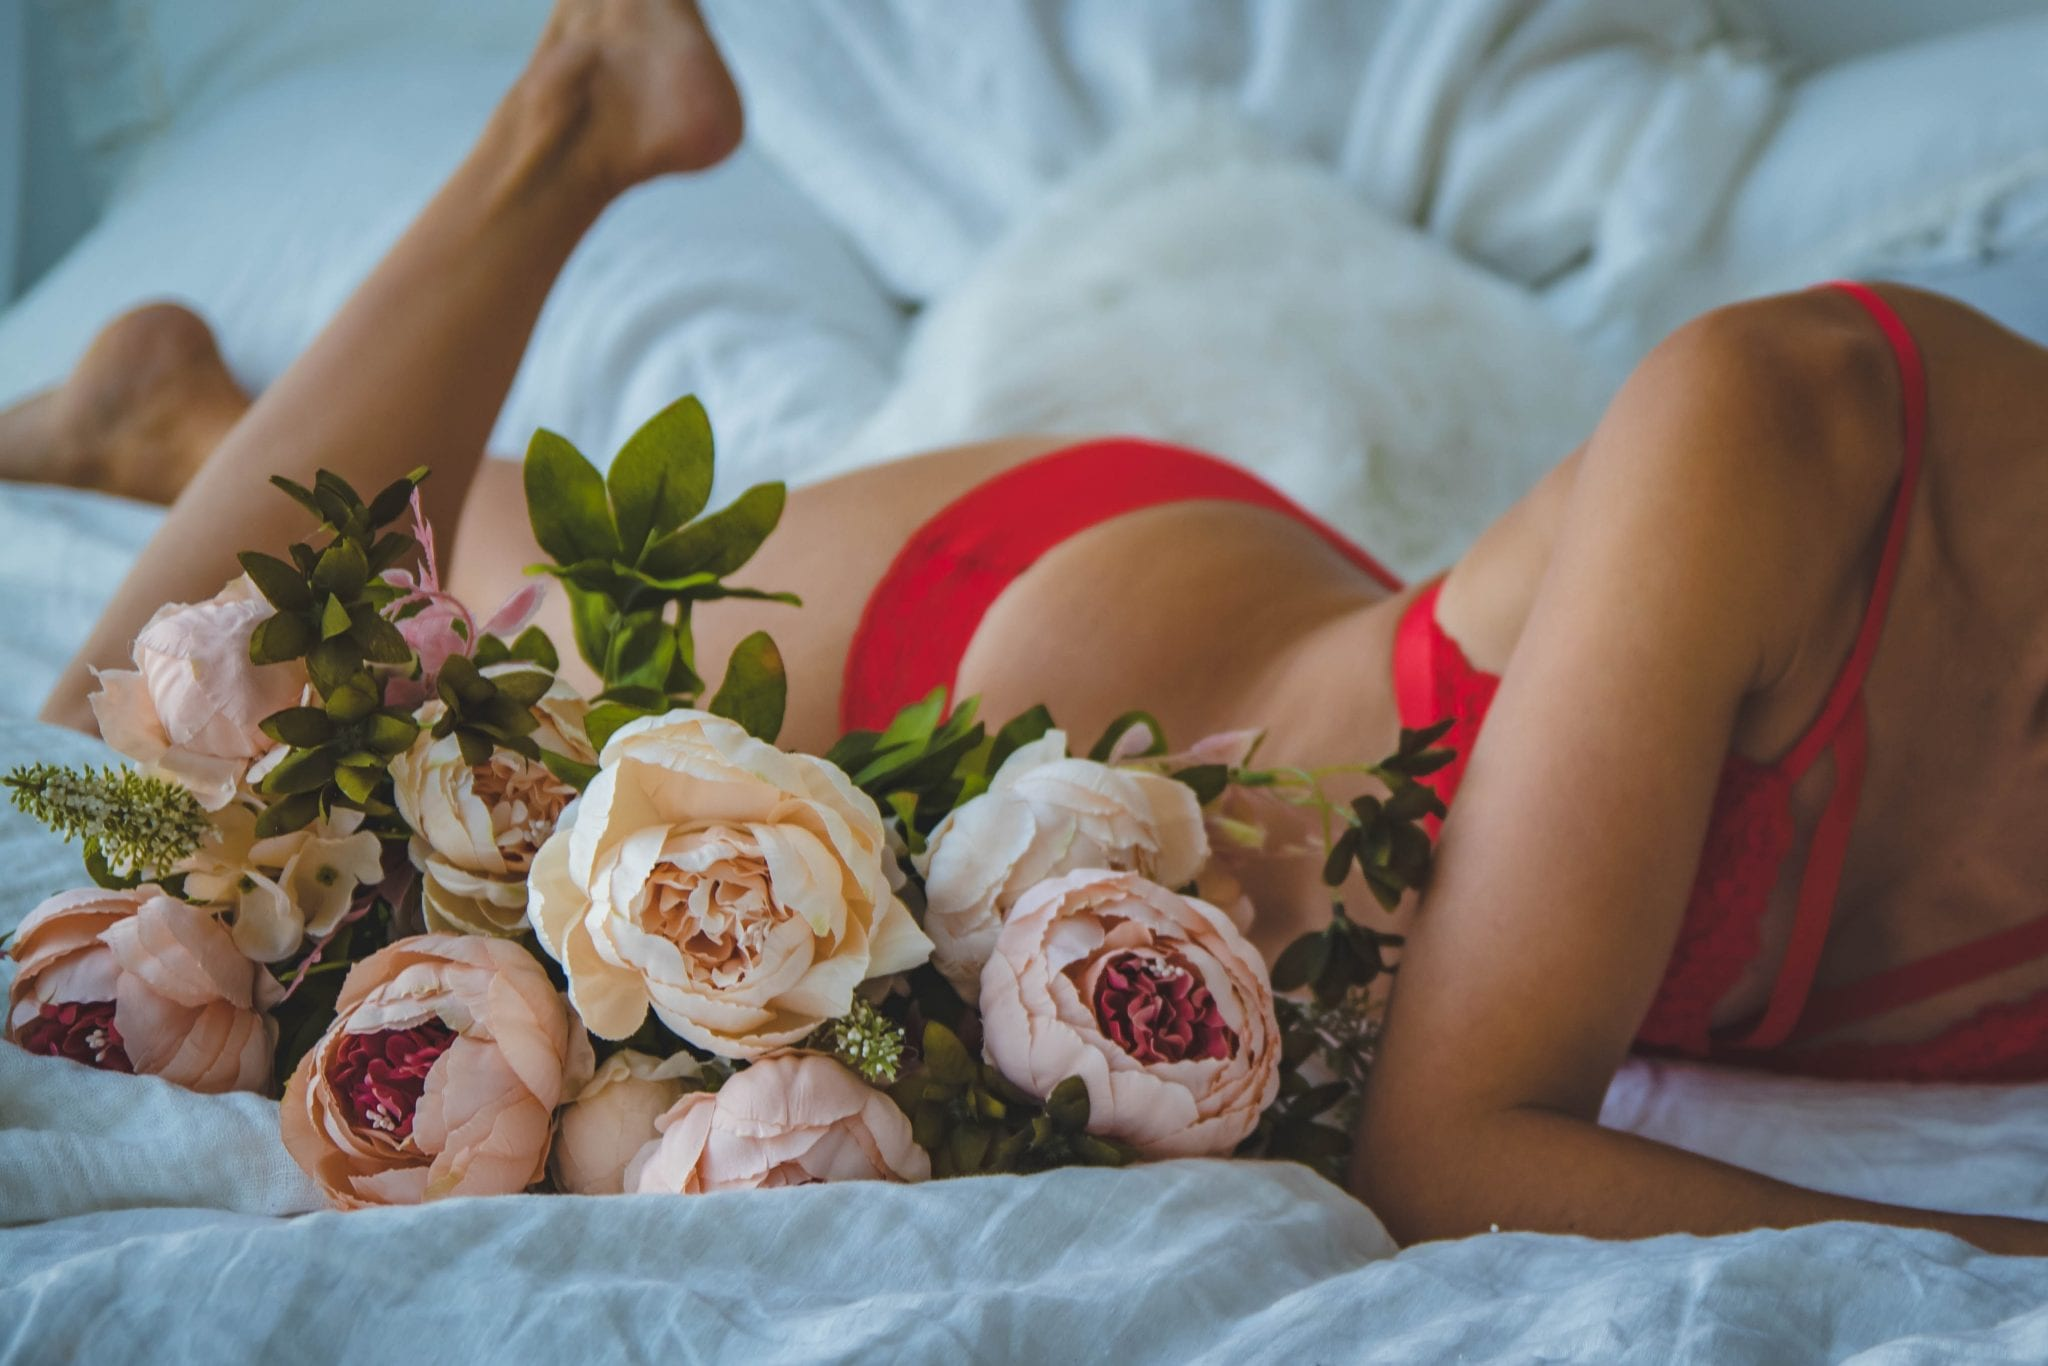 lingerie and flowers